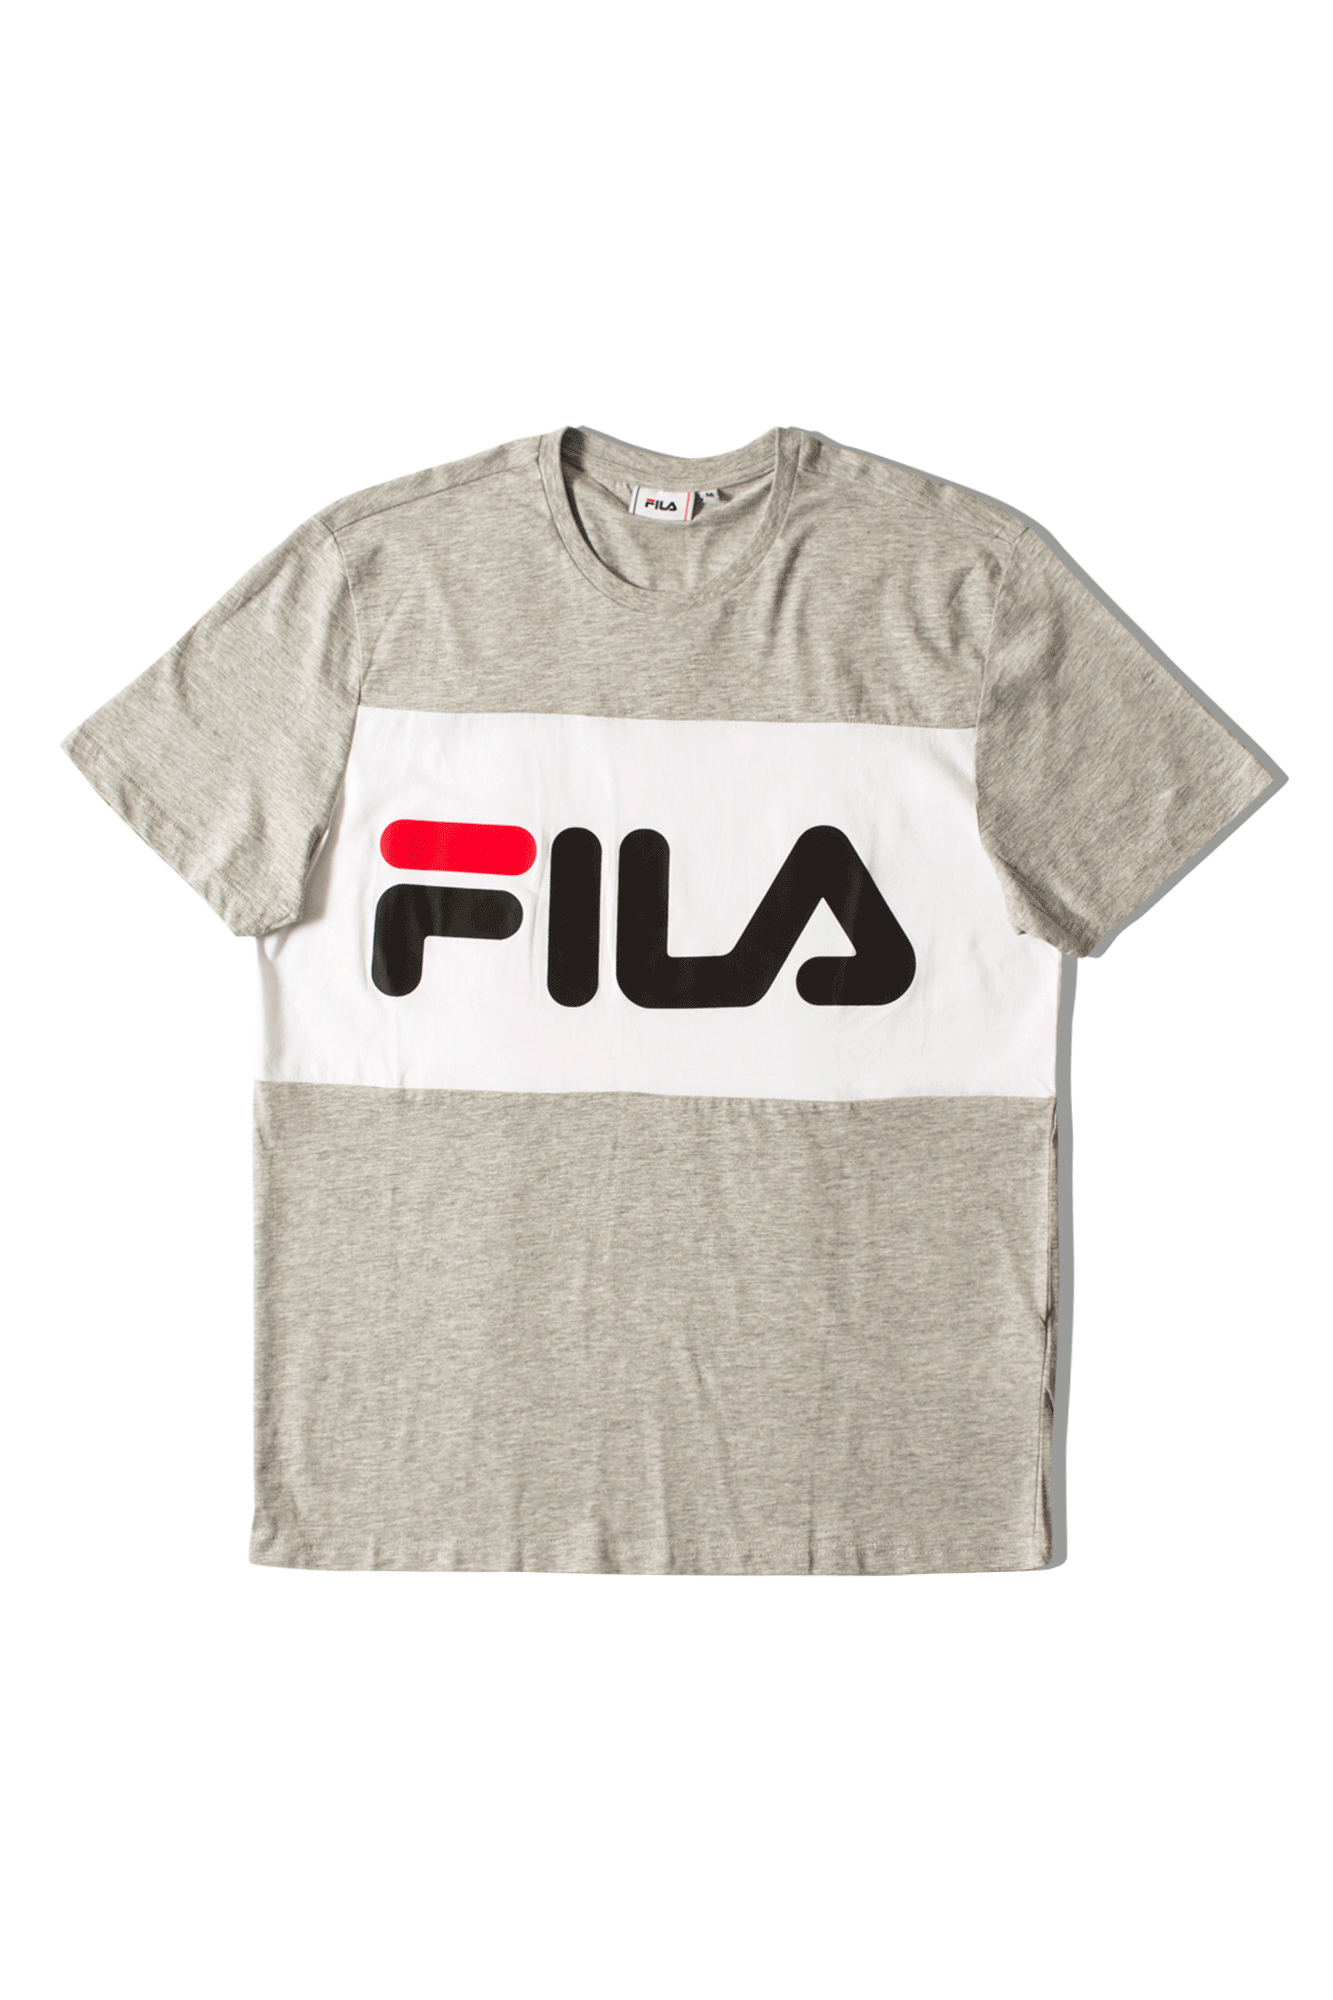 Fila T-Shirts Day Tee Grey 681244A068#000#C0009#XS - One Block Down